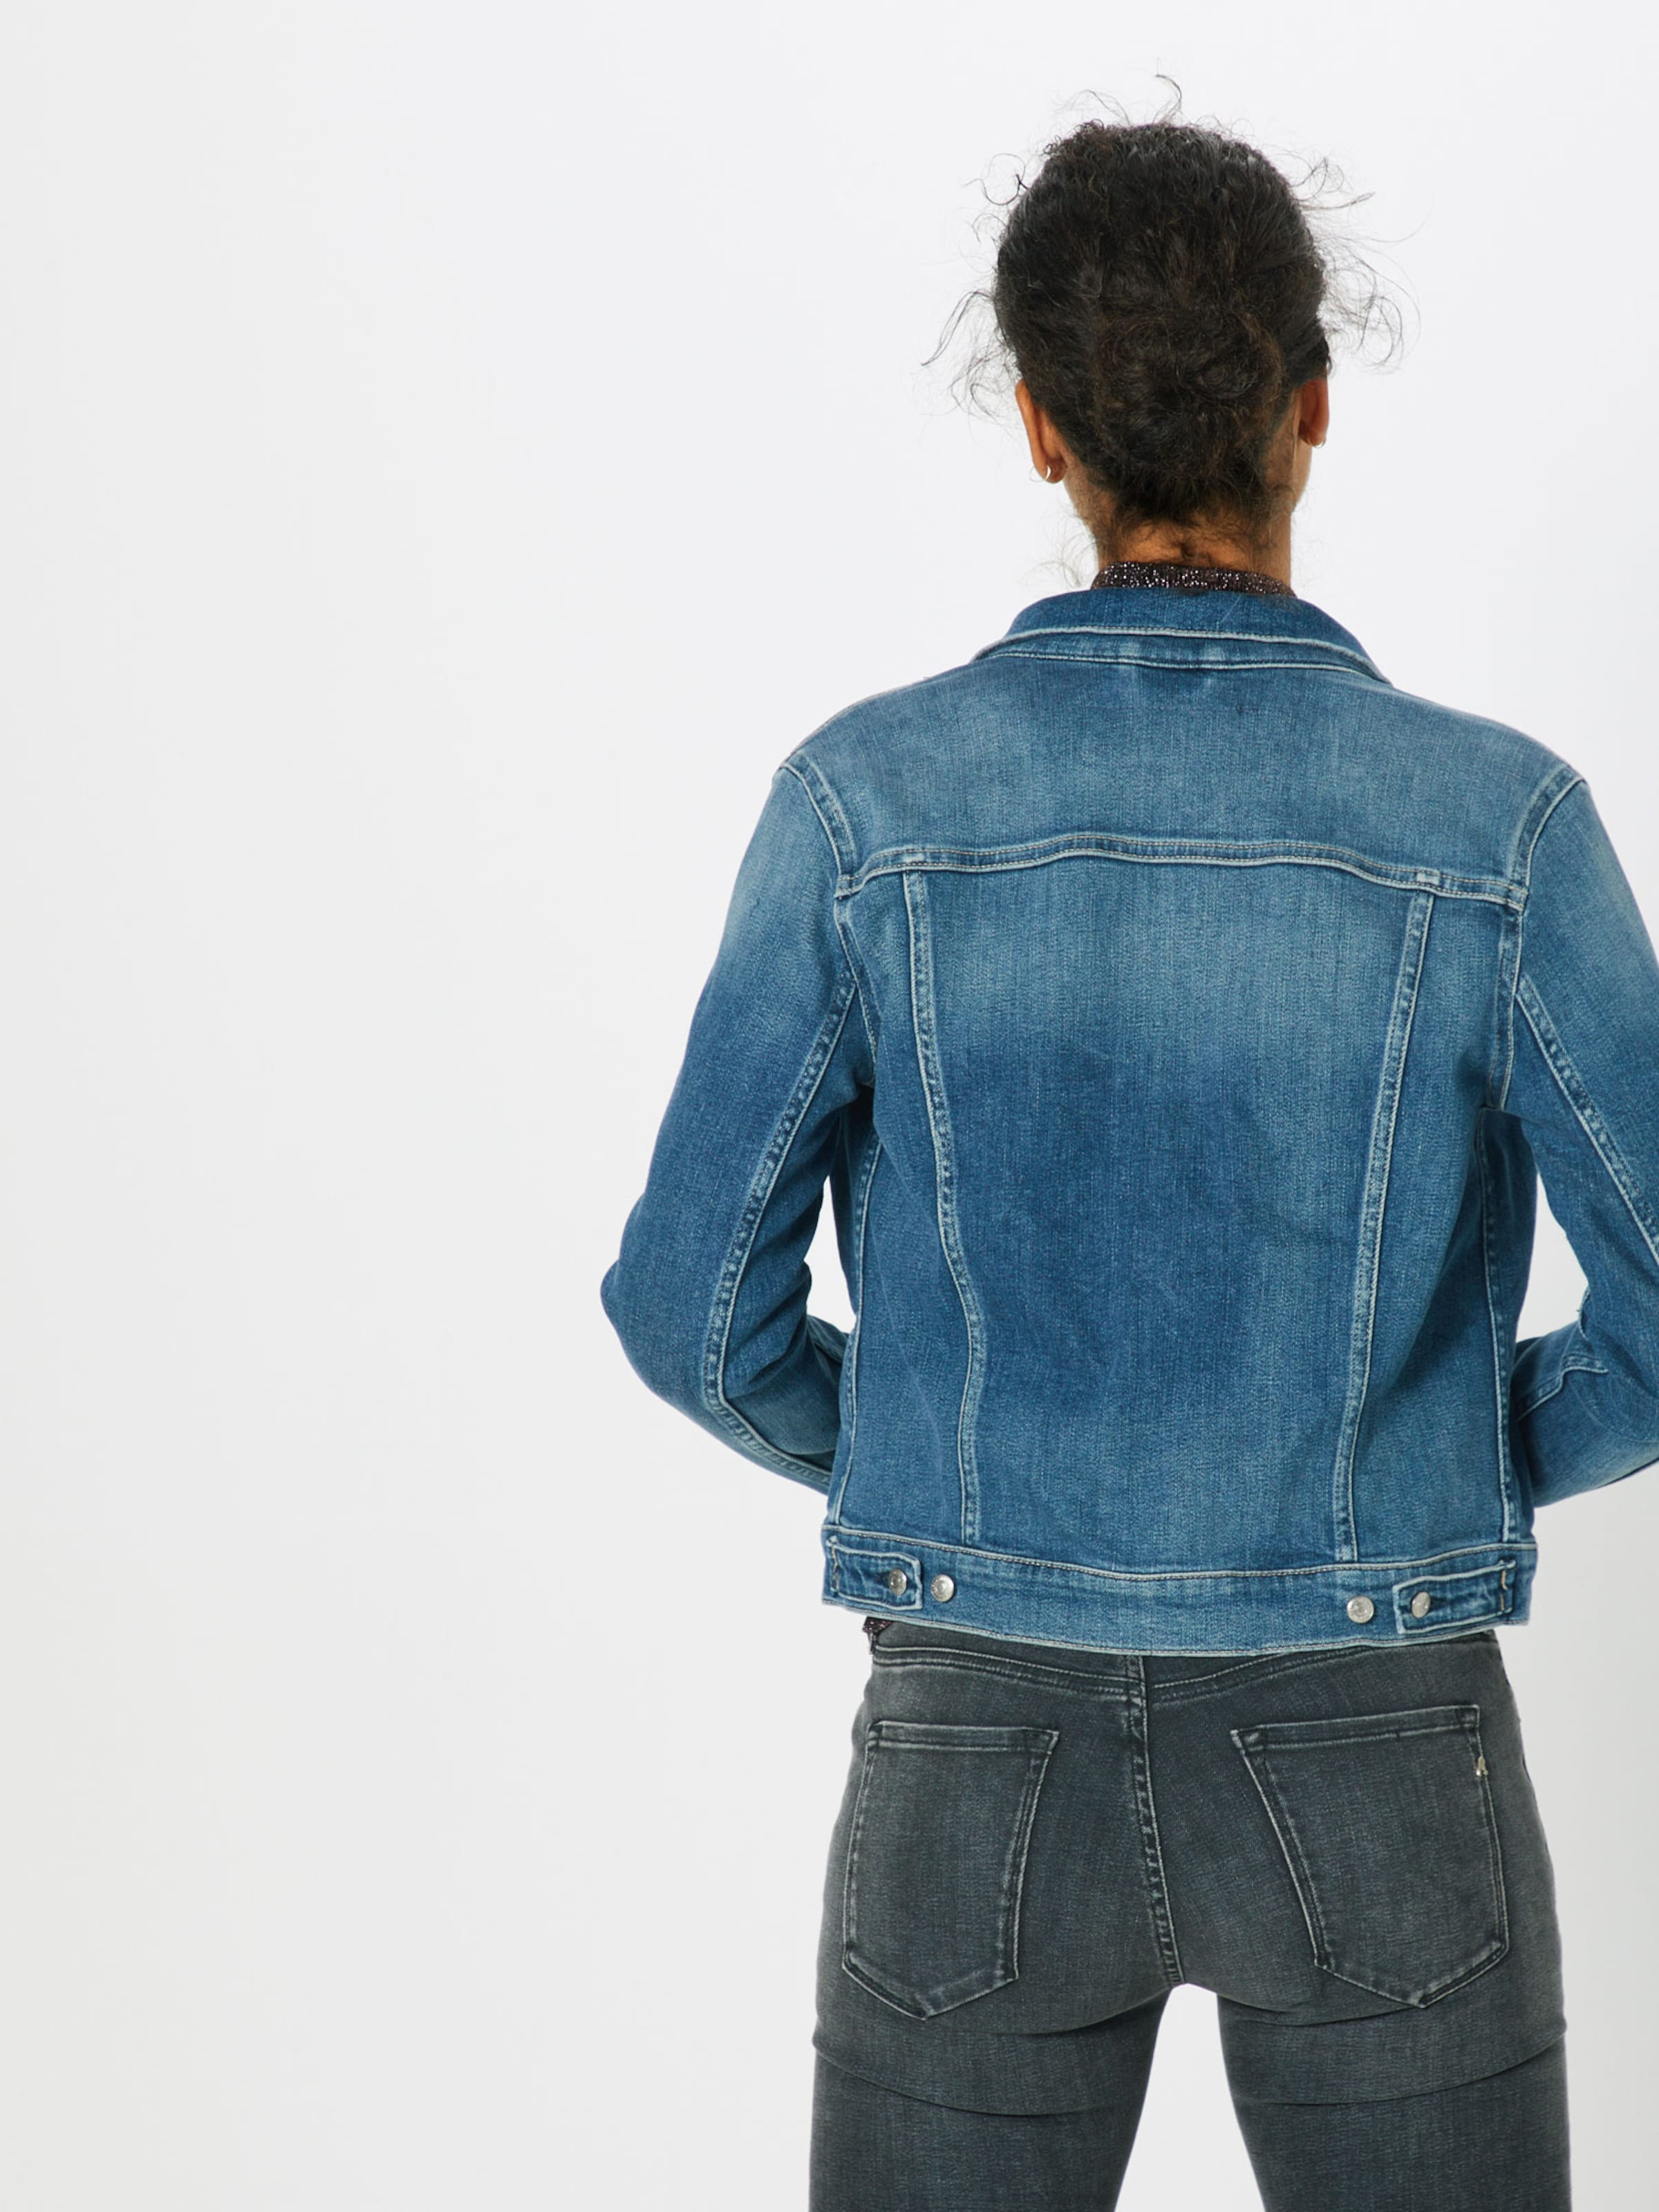 En Mi Bleu Veste Replay saison Denim Ygyf7vb6